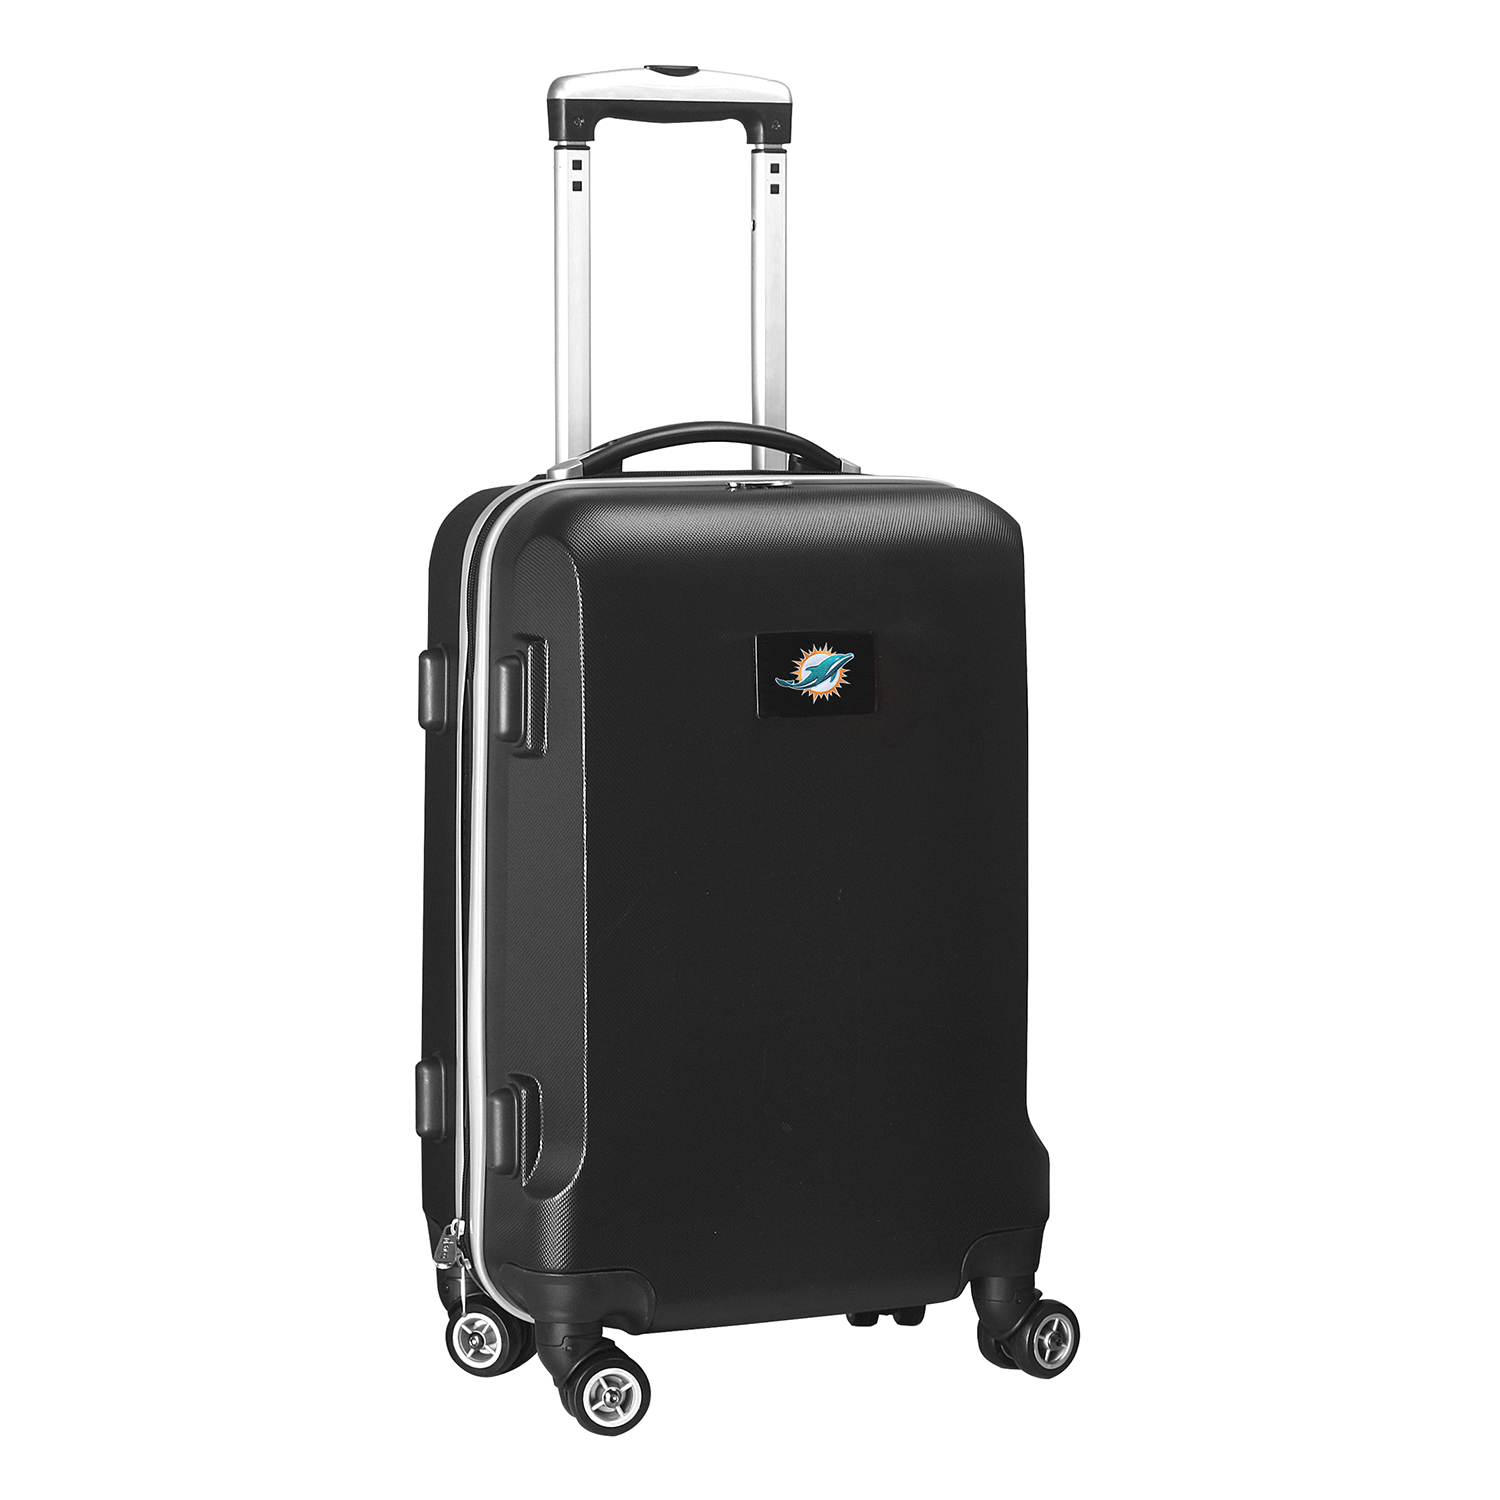 """Denco 2-In-1 Hard Case Rolling Carry-On Luggage, 21""""H x 13""""W x 9""""D, Miami Dolphins, Black"""